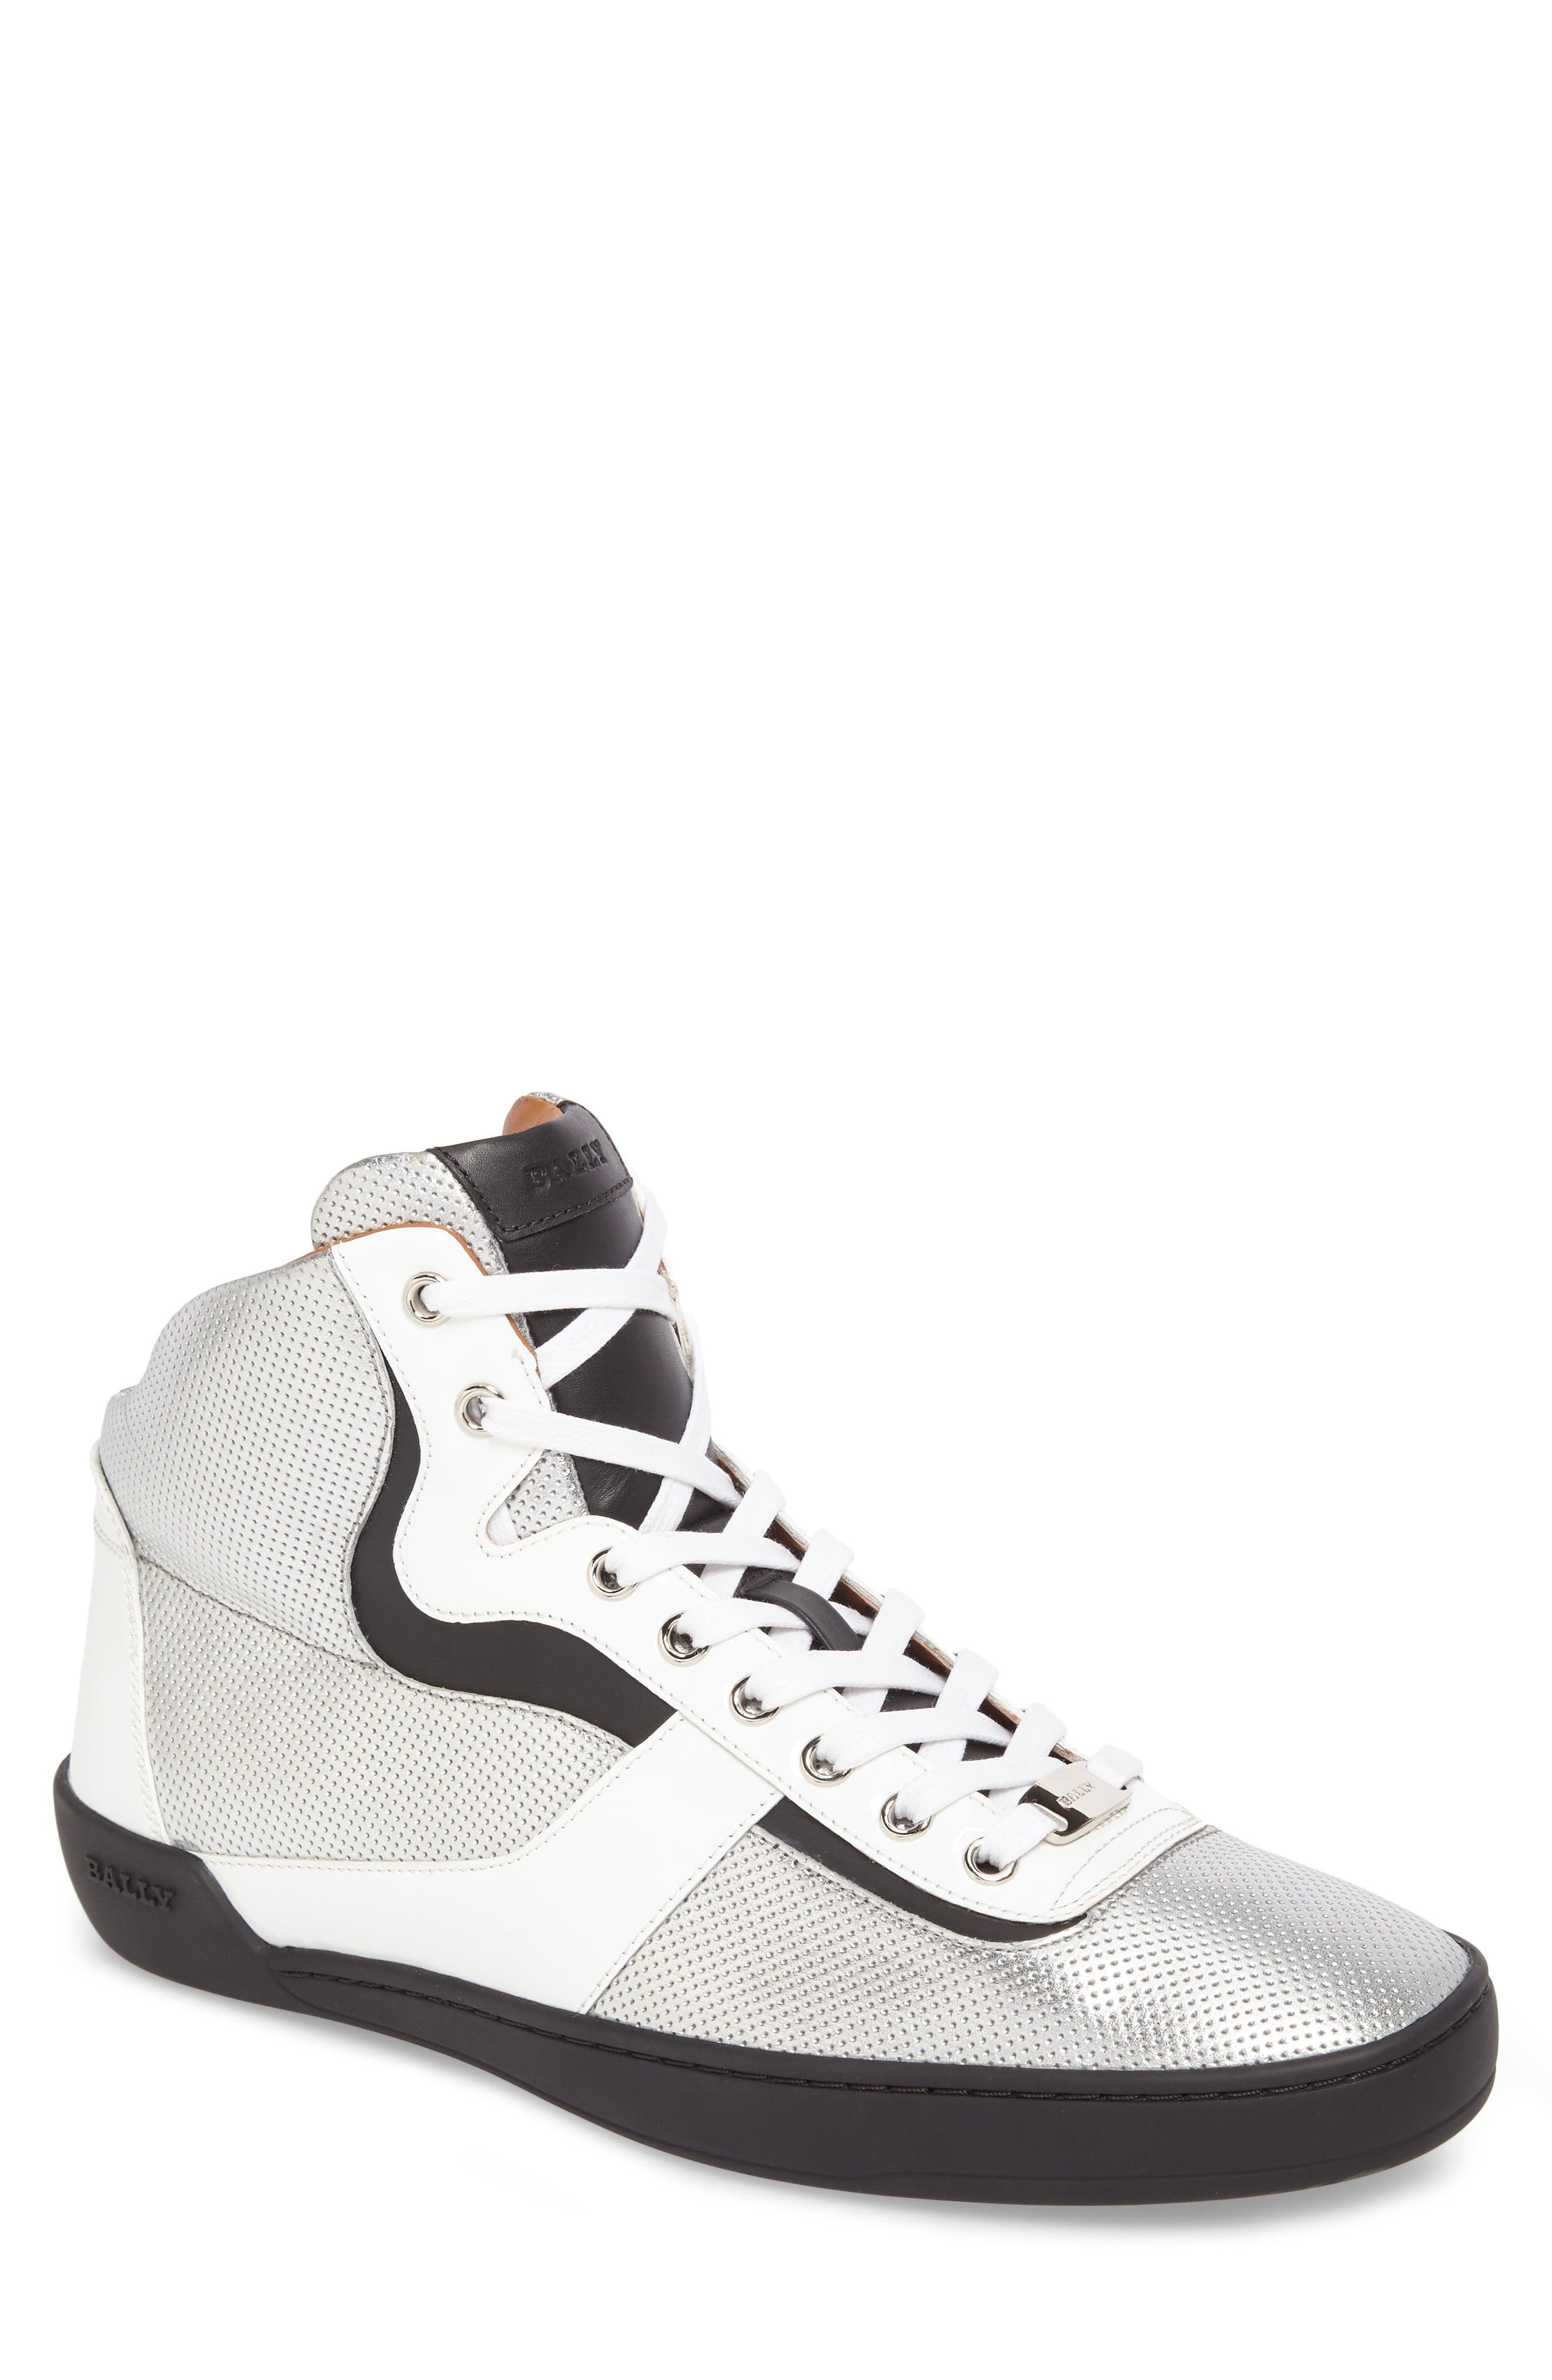 Eroy High Top Sneaker,                             Main thumbnail 1, color,                             049